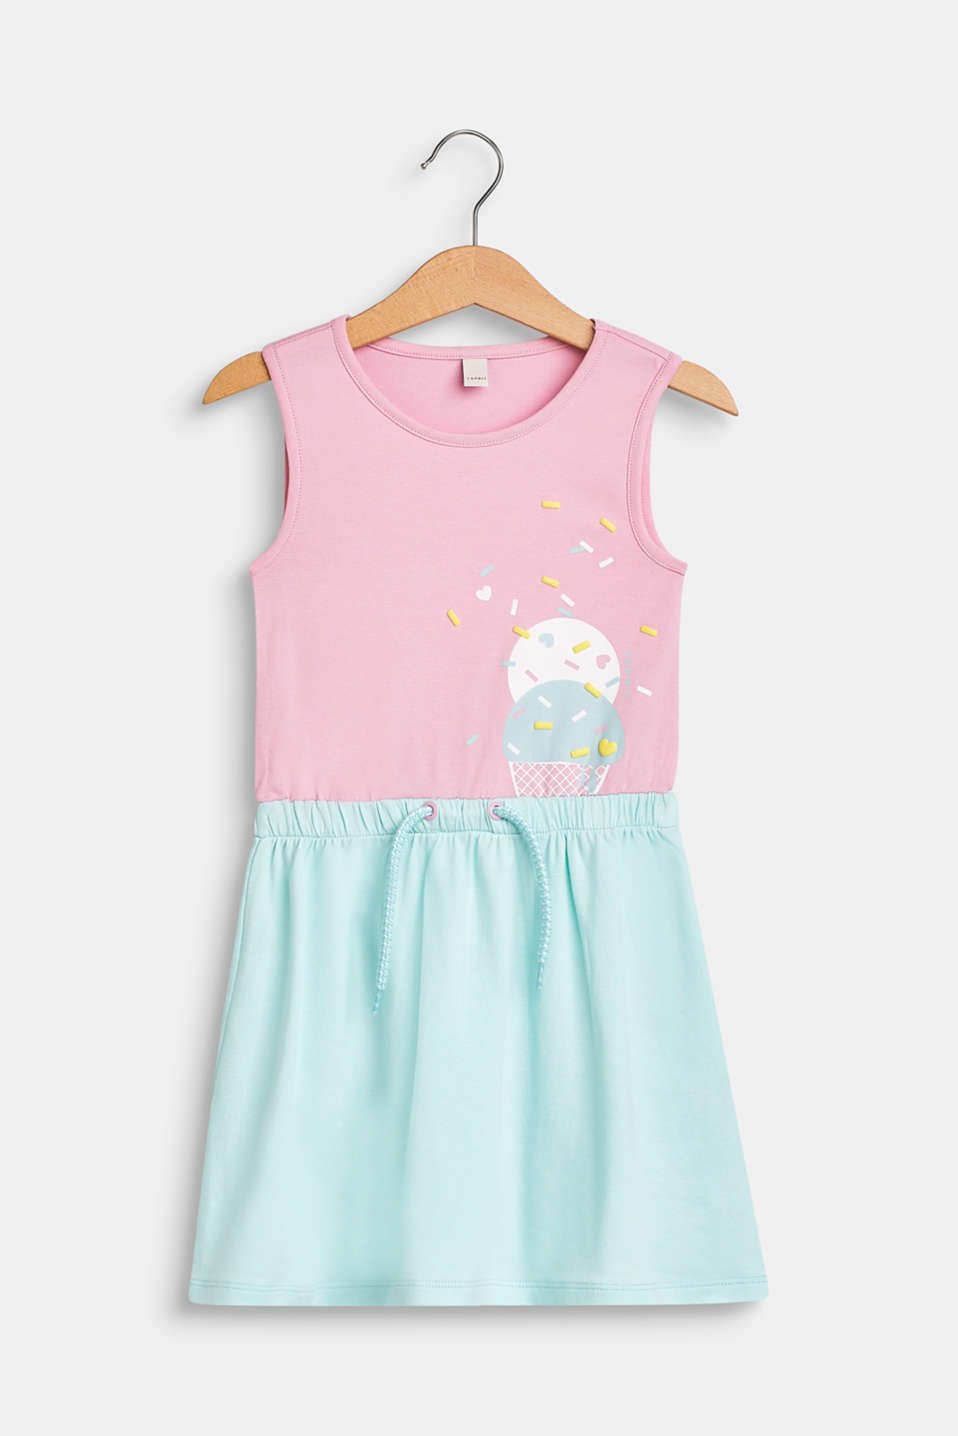 Esprit - Jersey dress with an ice cream print, stretch cotton